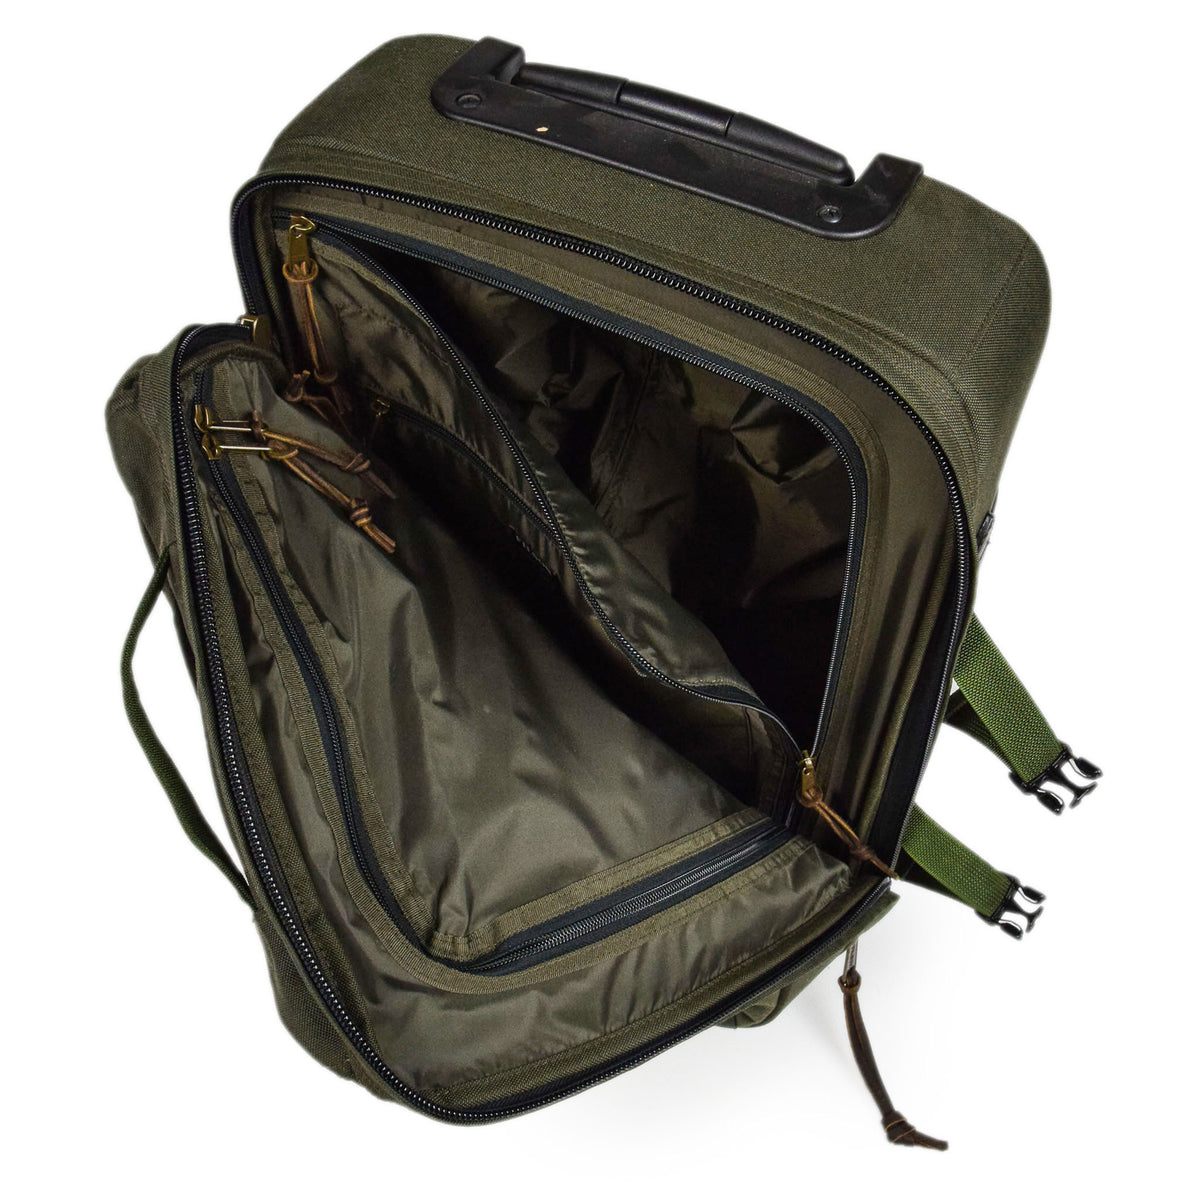 Filson Dryden Cordura Nylon 2-Wheel Carry-on Bag inside detail